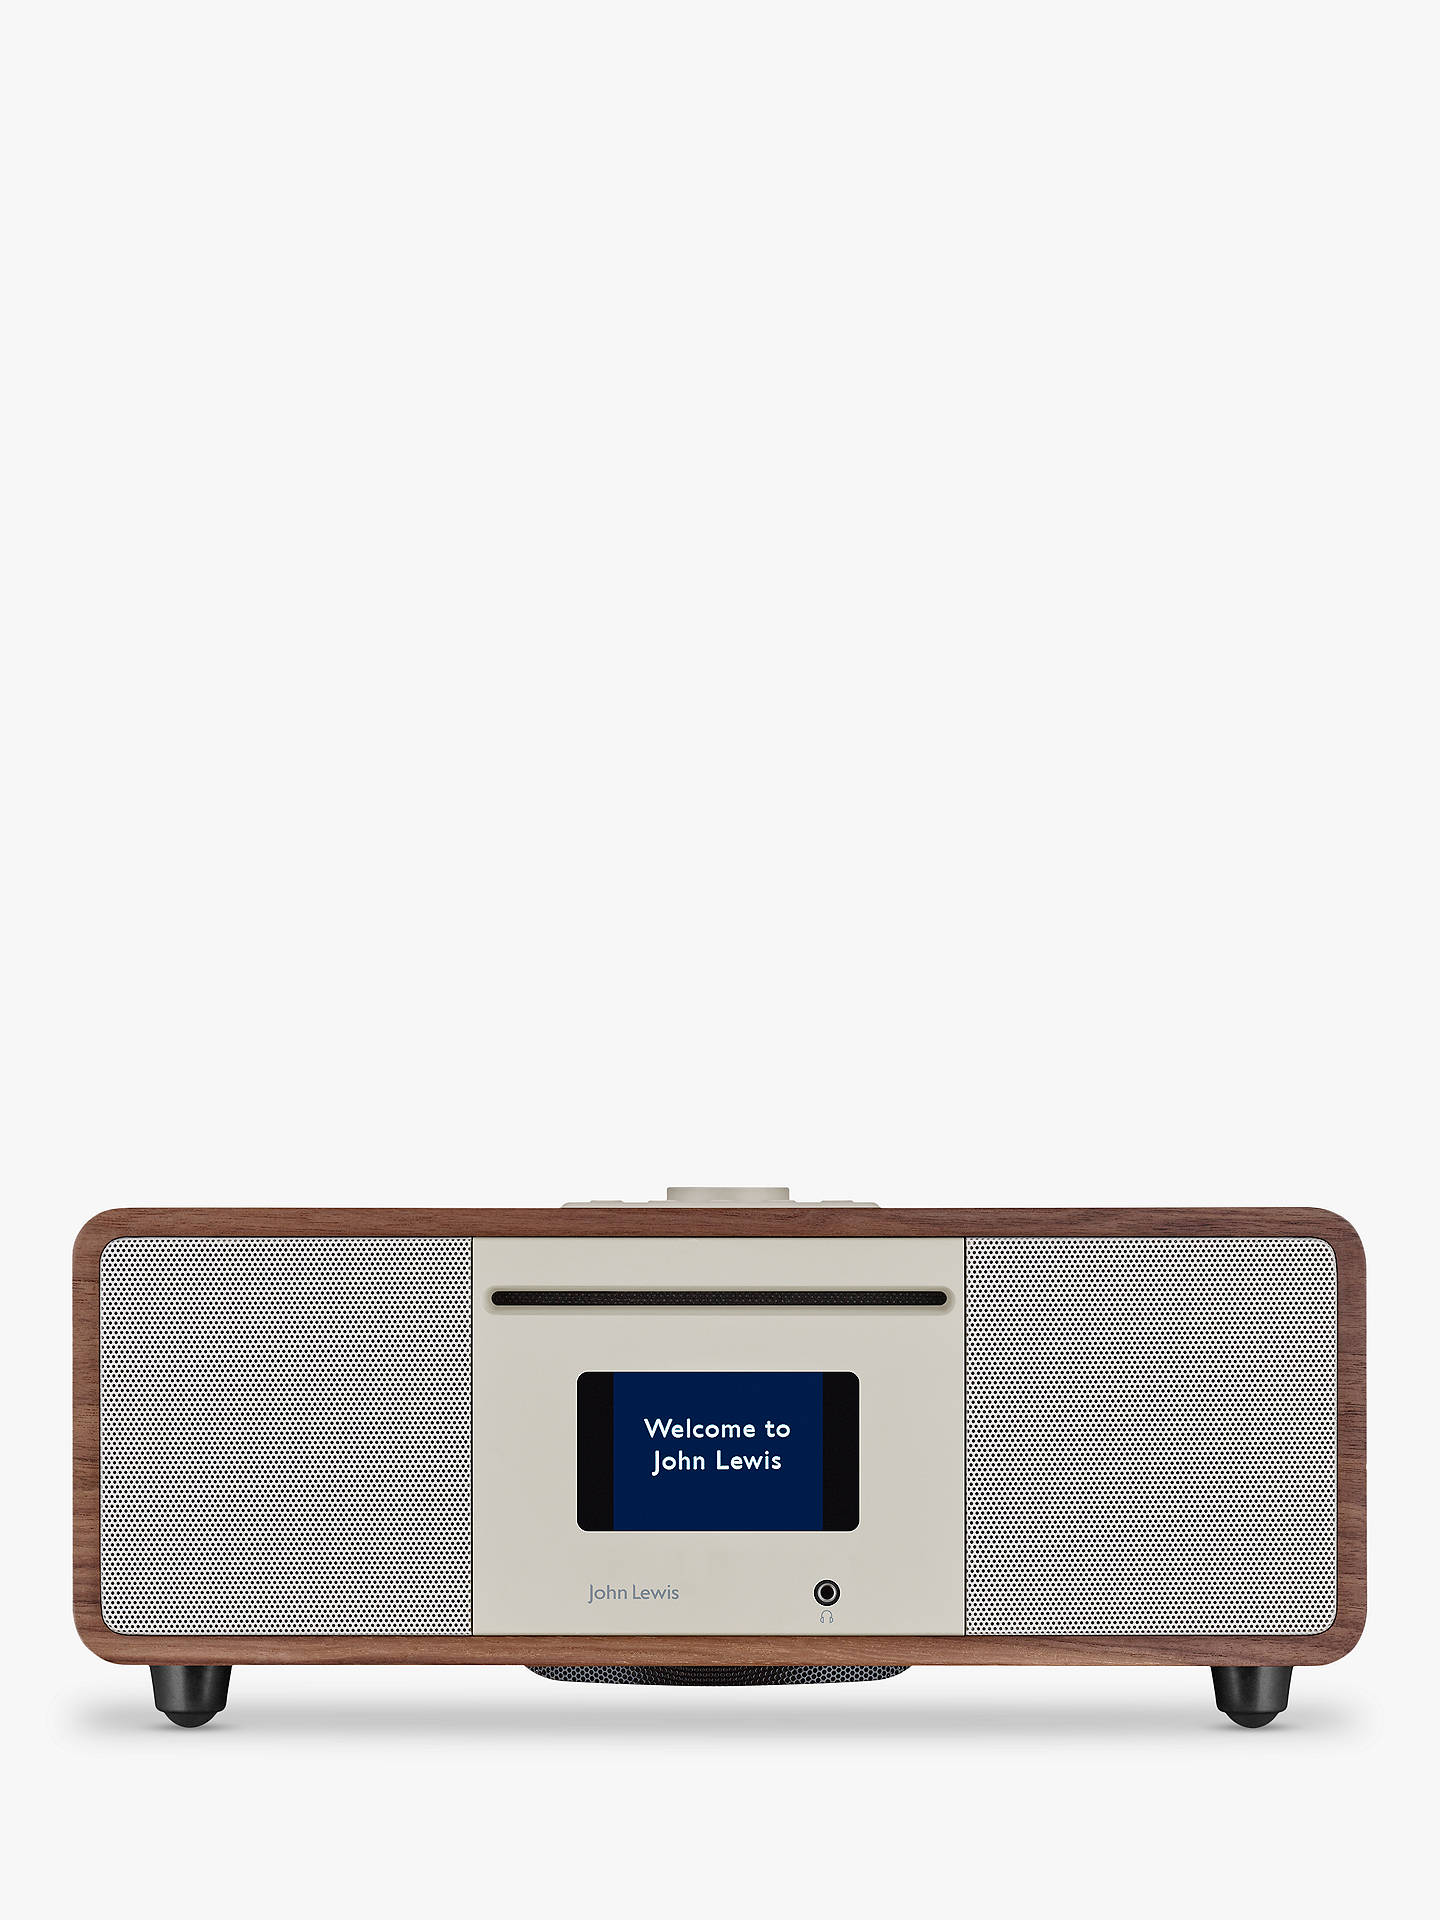 BuyJohn Lewis & Partners Cello Hi-Fi Music System with DAB/DAB+/FM/Internet Radio, CD Player, Wi-Fi & Bluetooth, Walnut Online at johnlewis.com